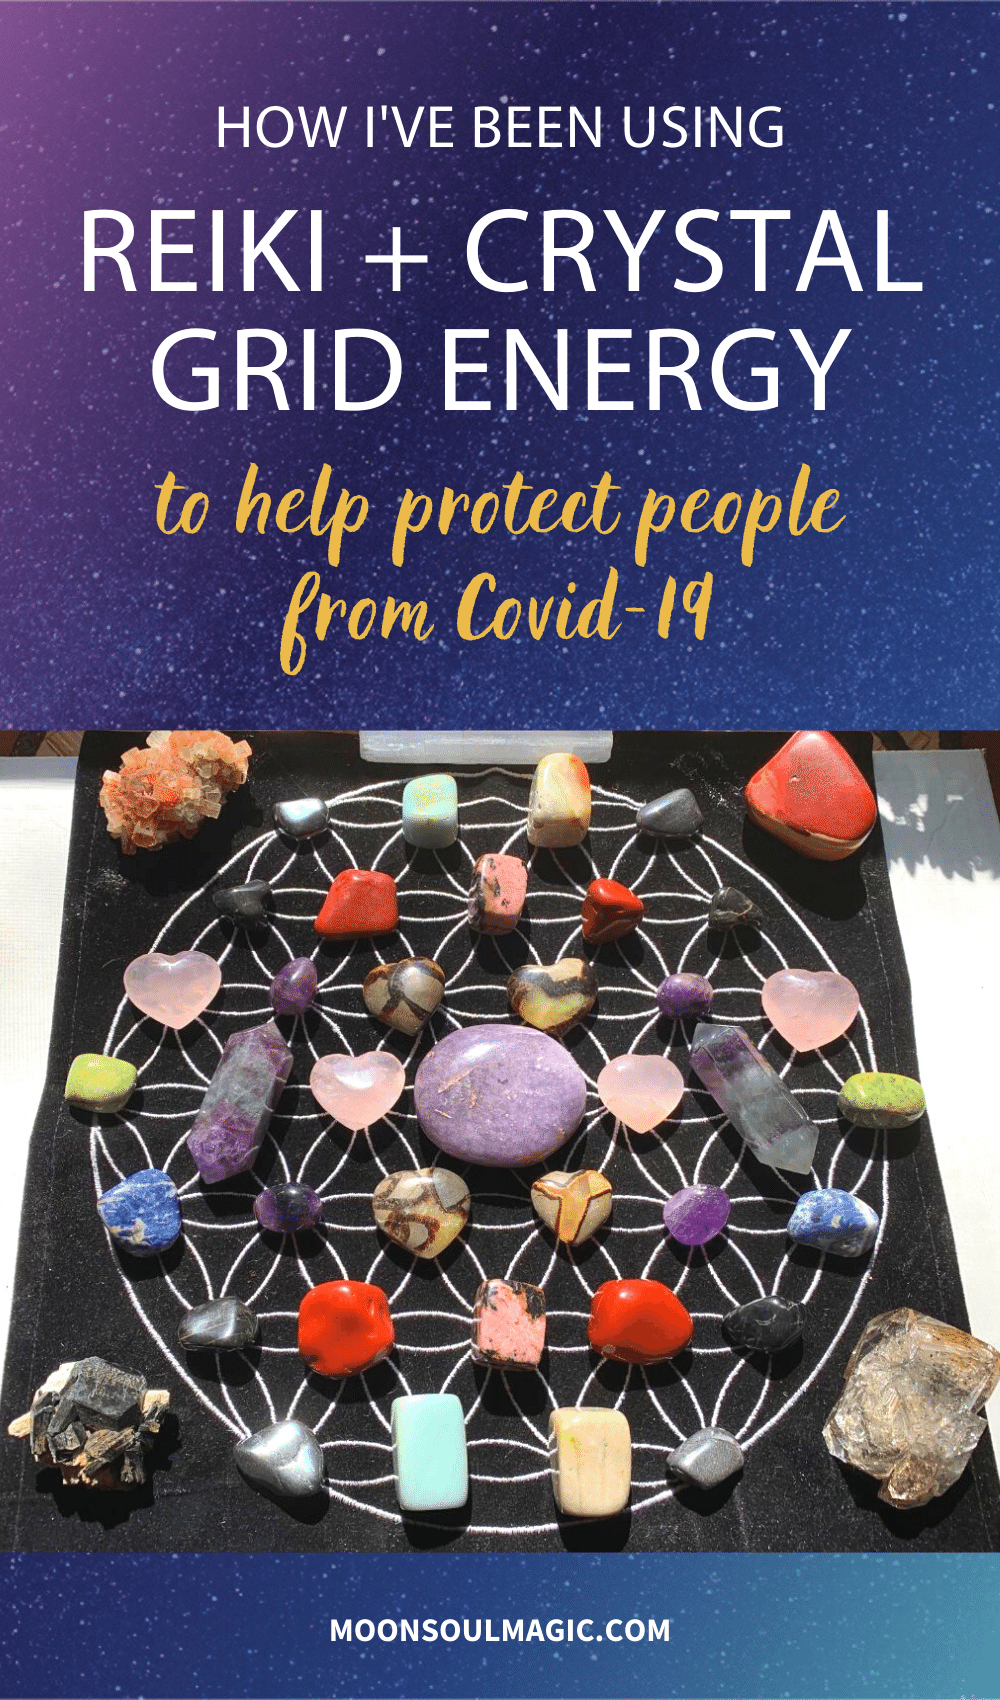 How I've Been Using Reiki + Crystal Grid Energy to Help Protect People From COVID-19